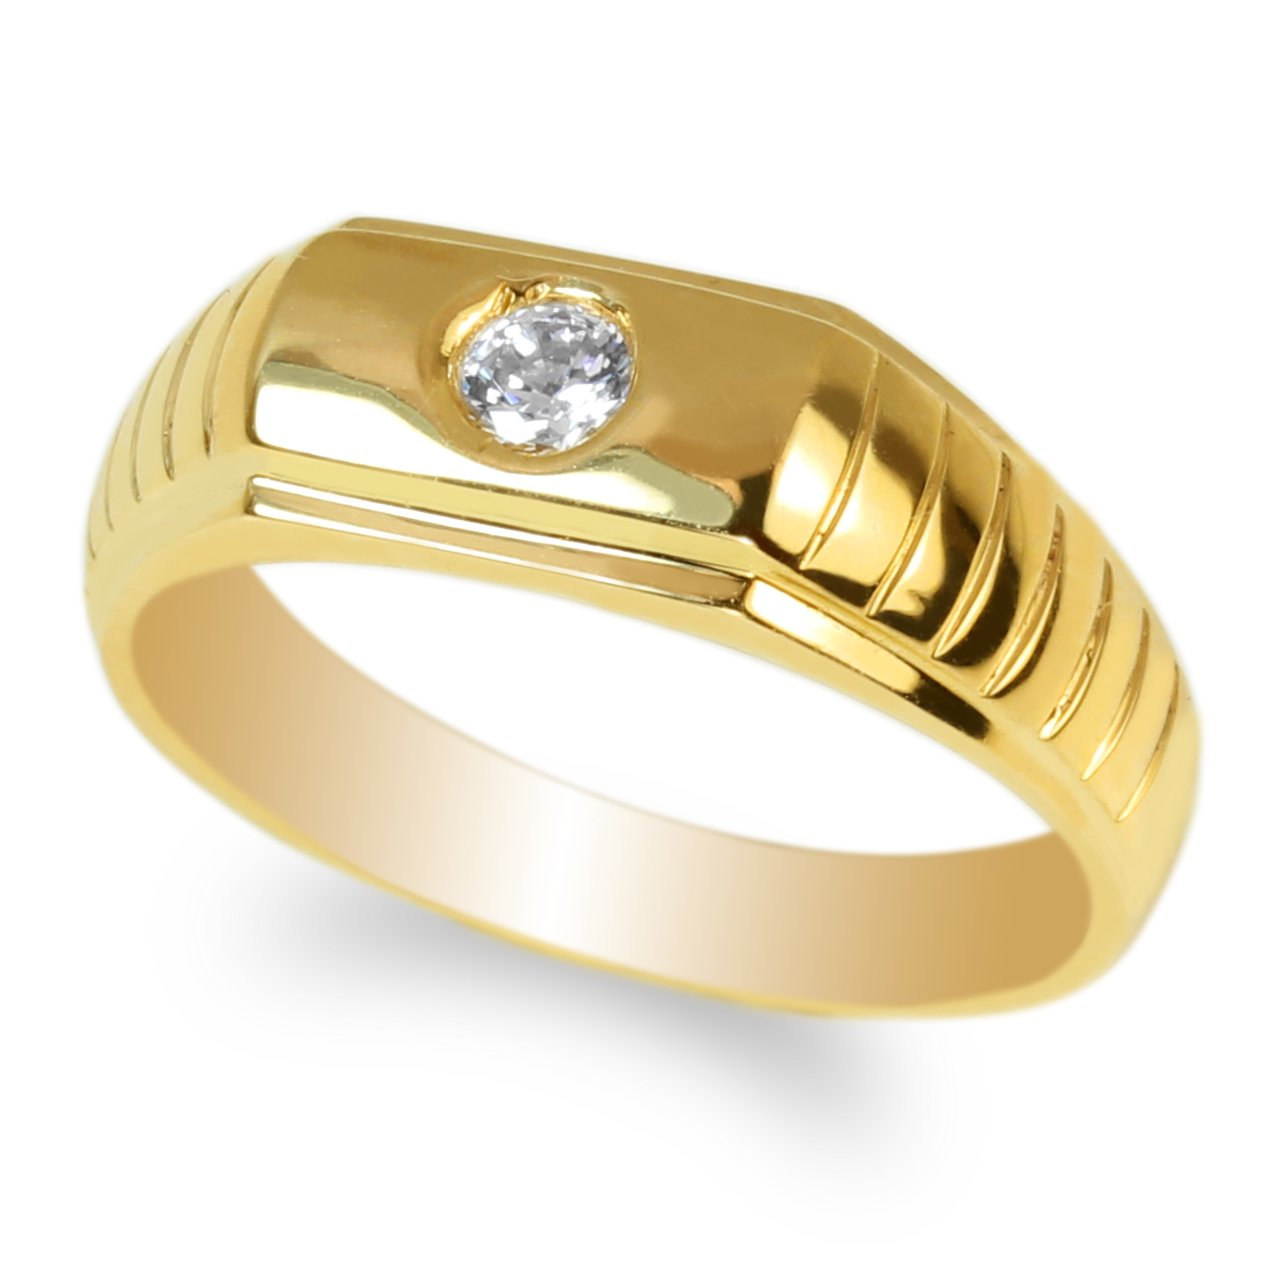 JamesJenny Mens 10K Yellow Gold 0.16ct Round CZ Fancy Solid Band Ring Size 7-12